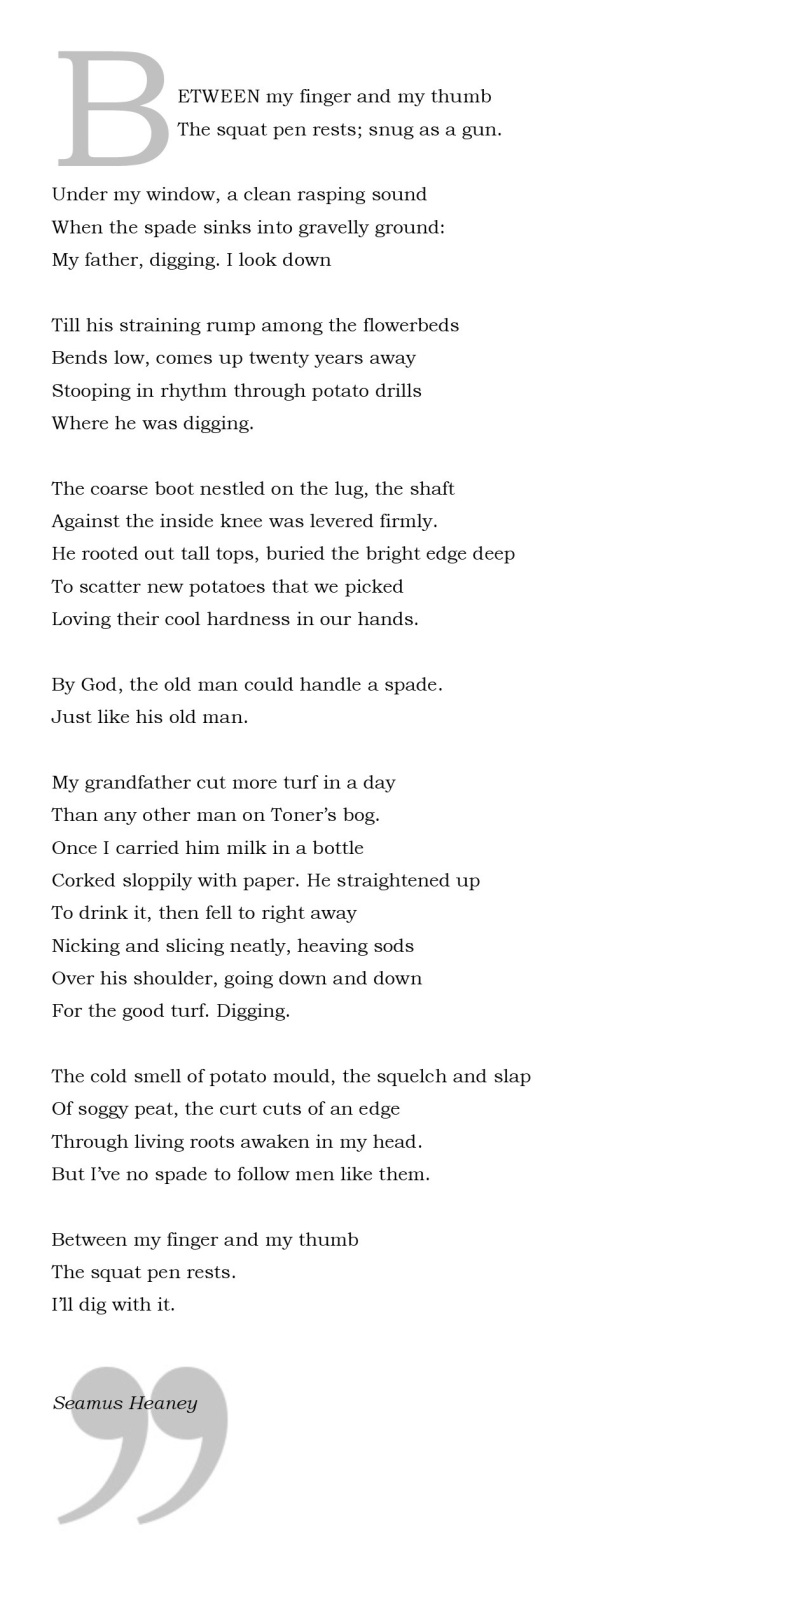 heaney9